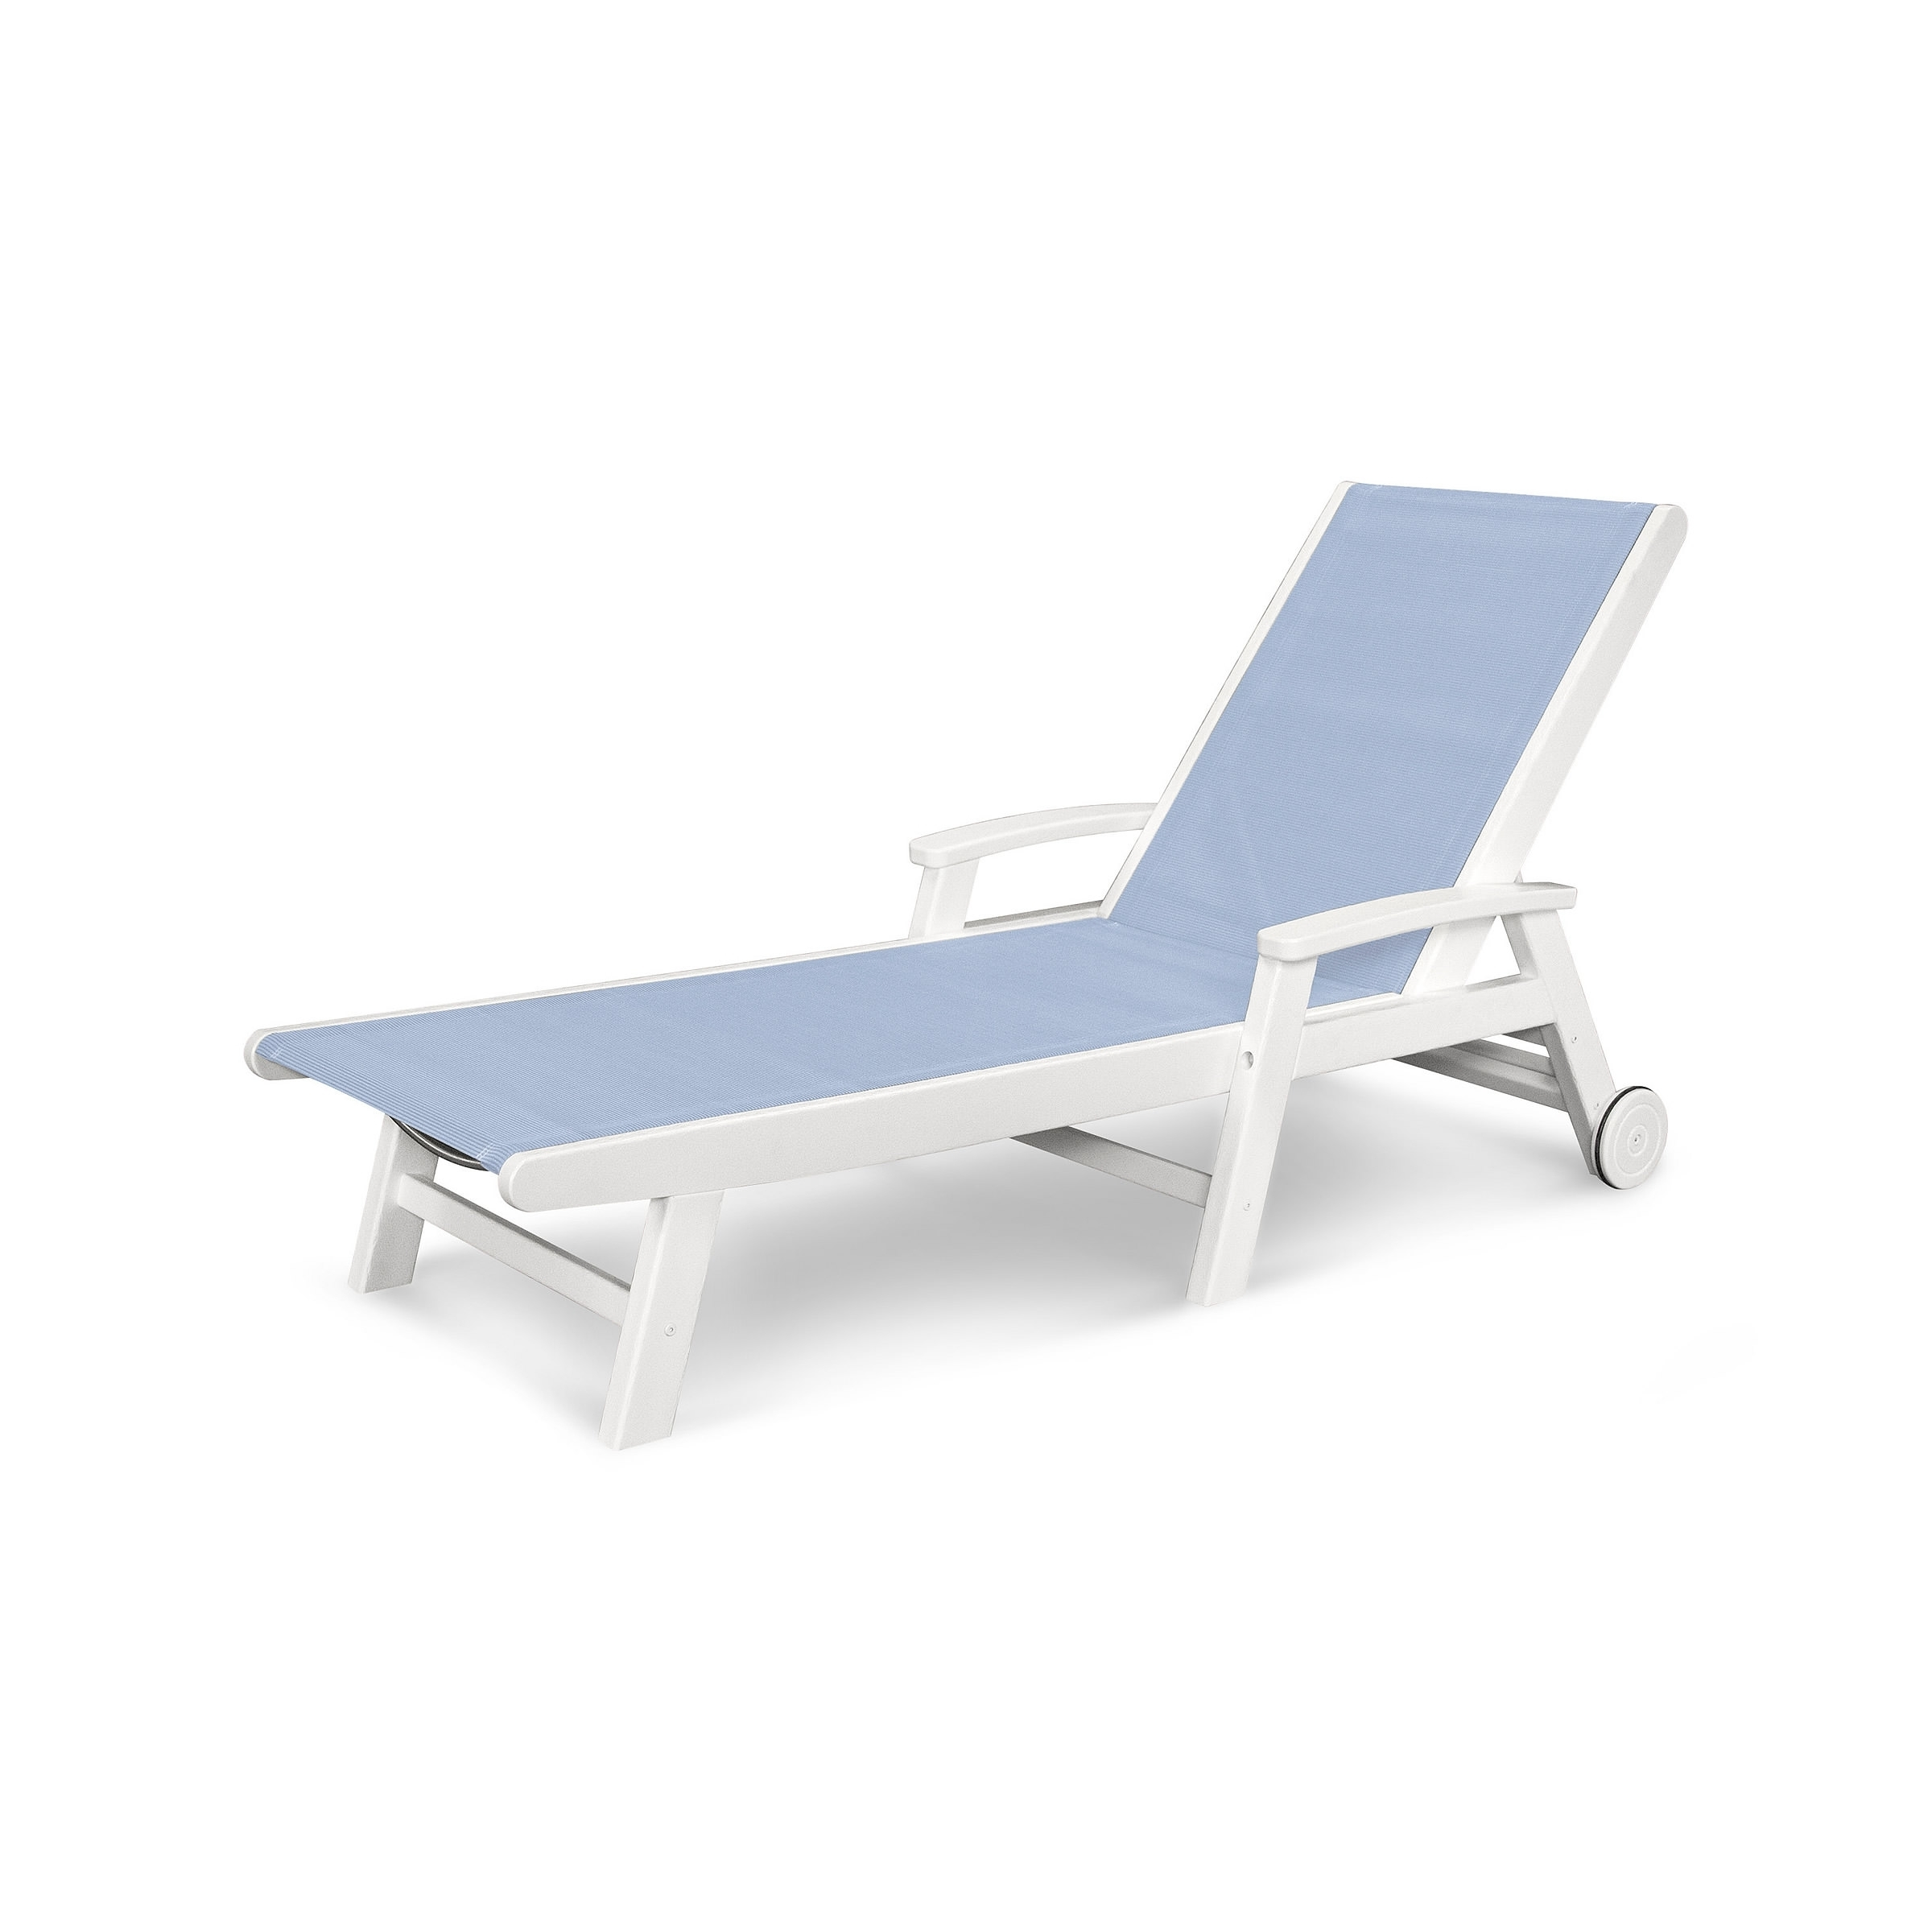 Most Up To Date Sling Chaise Lounge Chairs For Outdoor Inside Polywood Furniture (View 9 of 15)